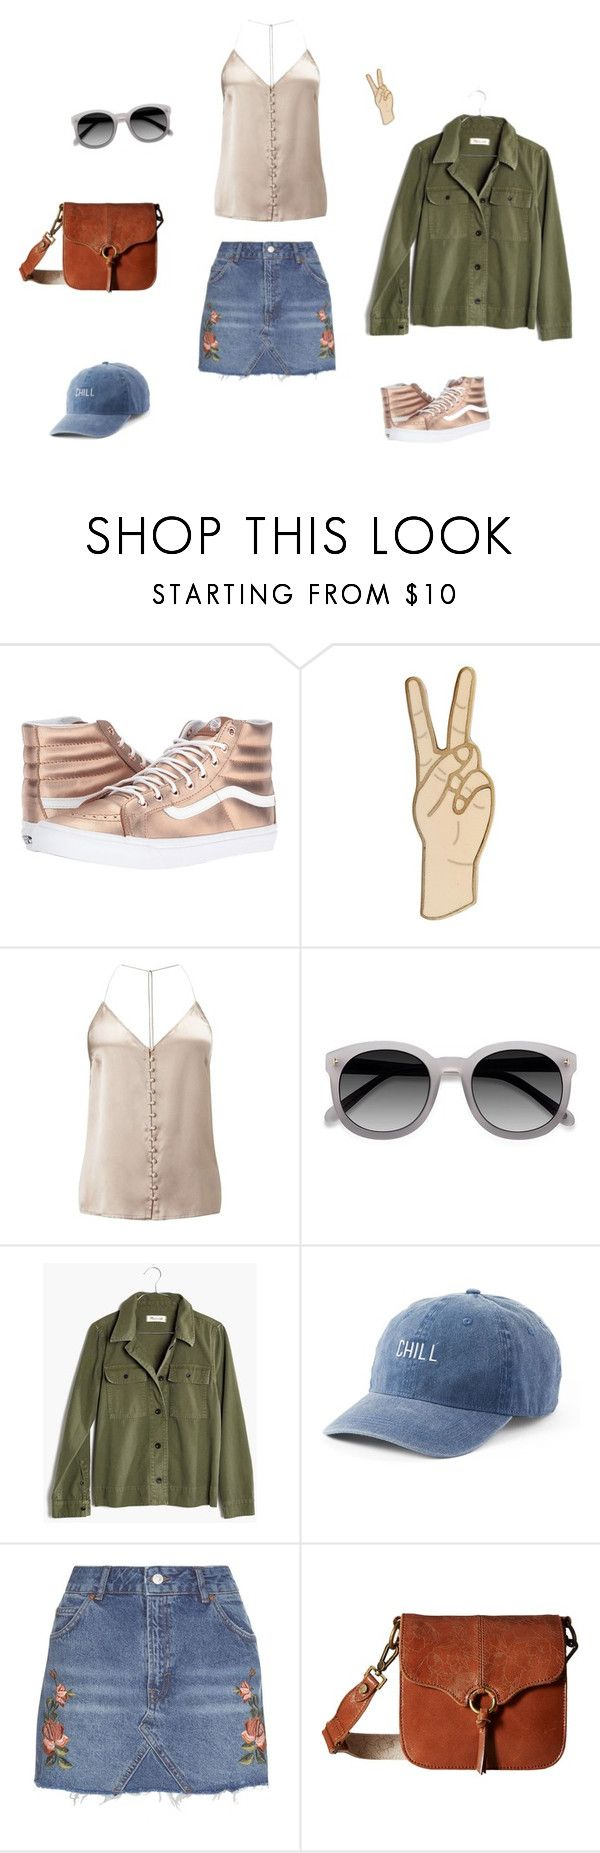 """SR Festival Look 2"" by ljaeckel on Polyvore featuring Vans, Lucky Brand, Miss Selfridge, Ace, Madewell, SO, Topshop and Sakroots"